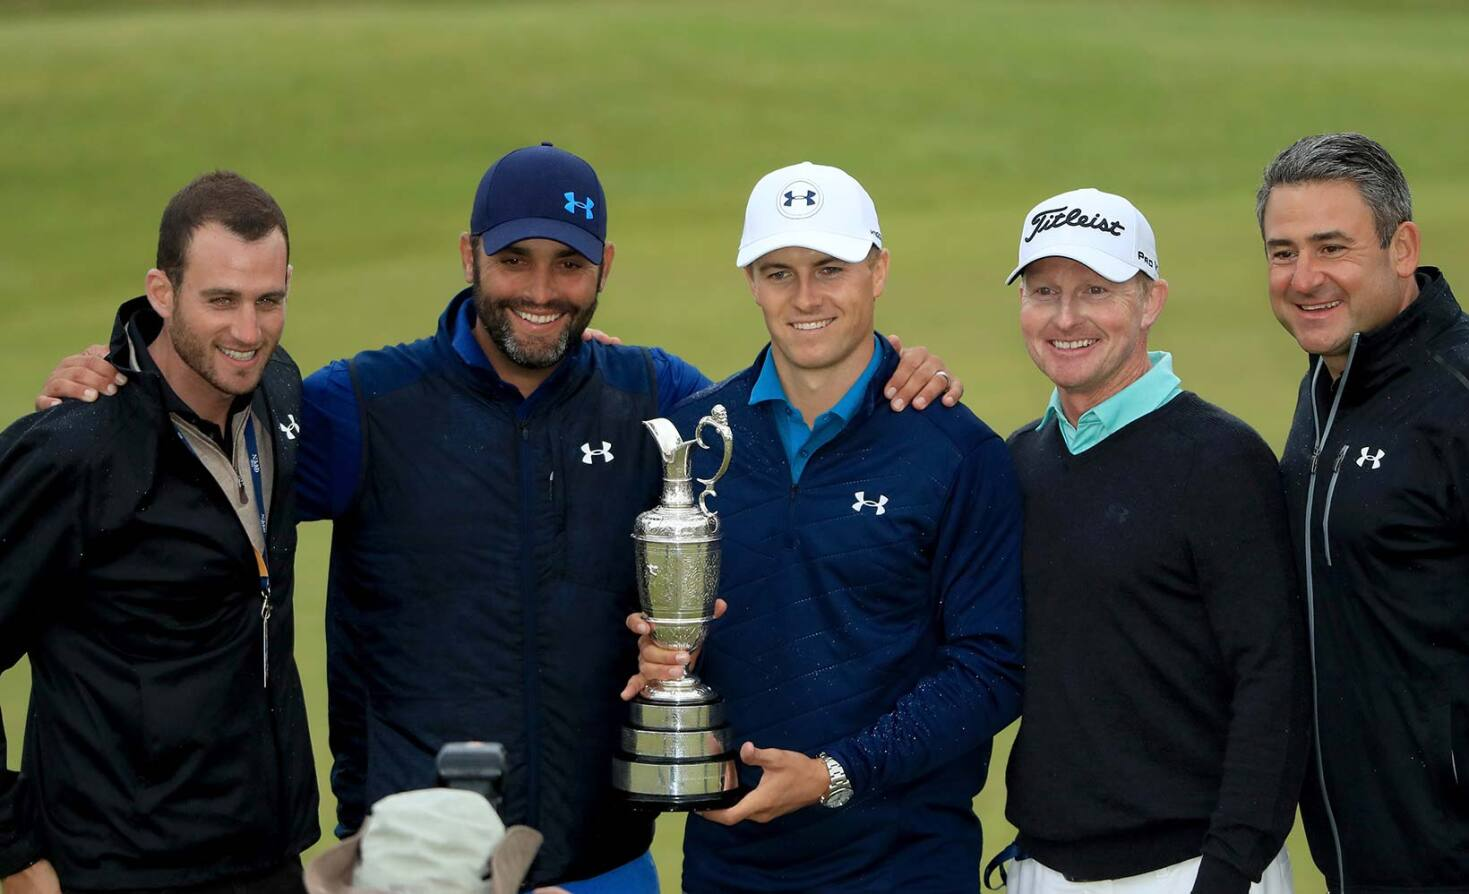 2017 Open Championship: Final Round - Team Spieth